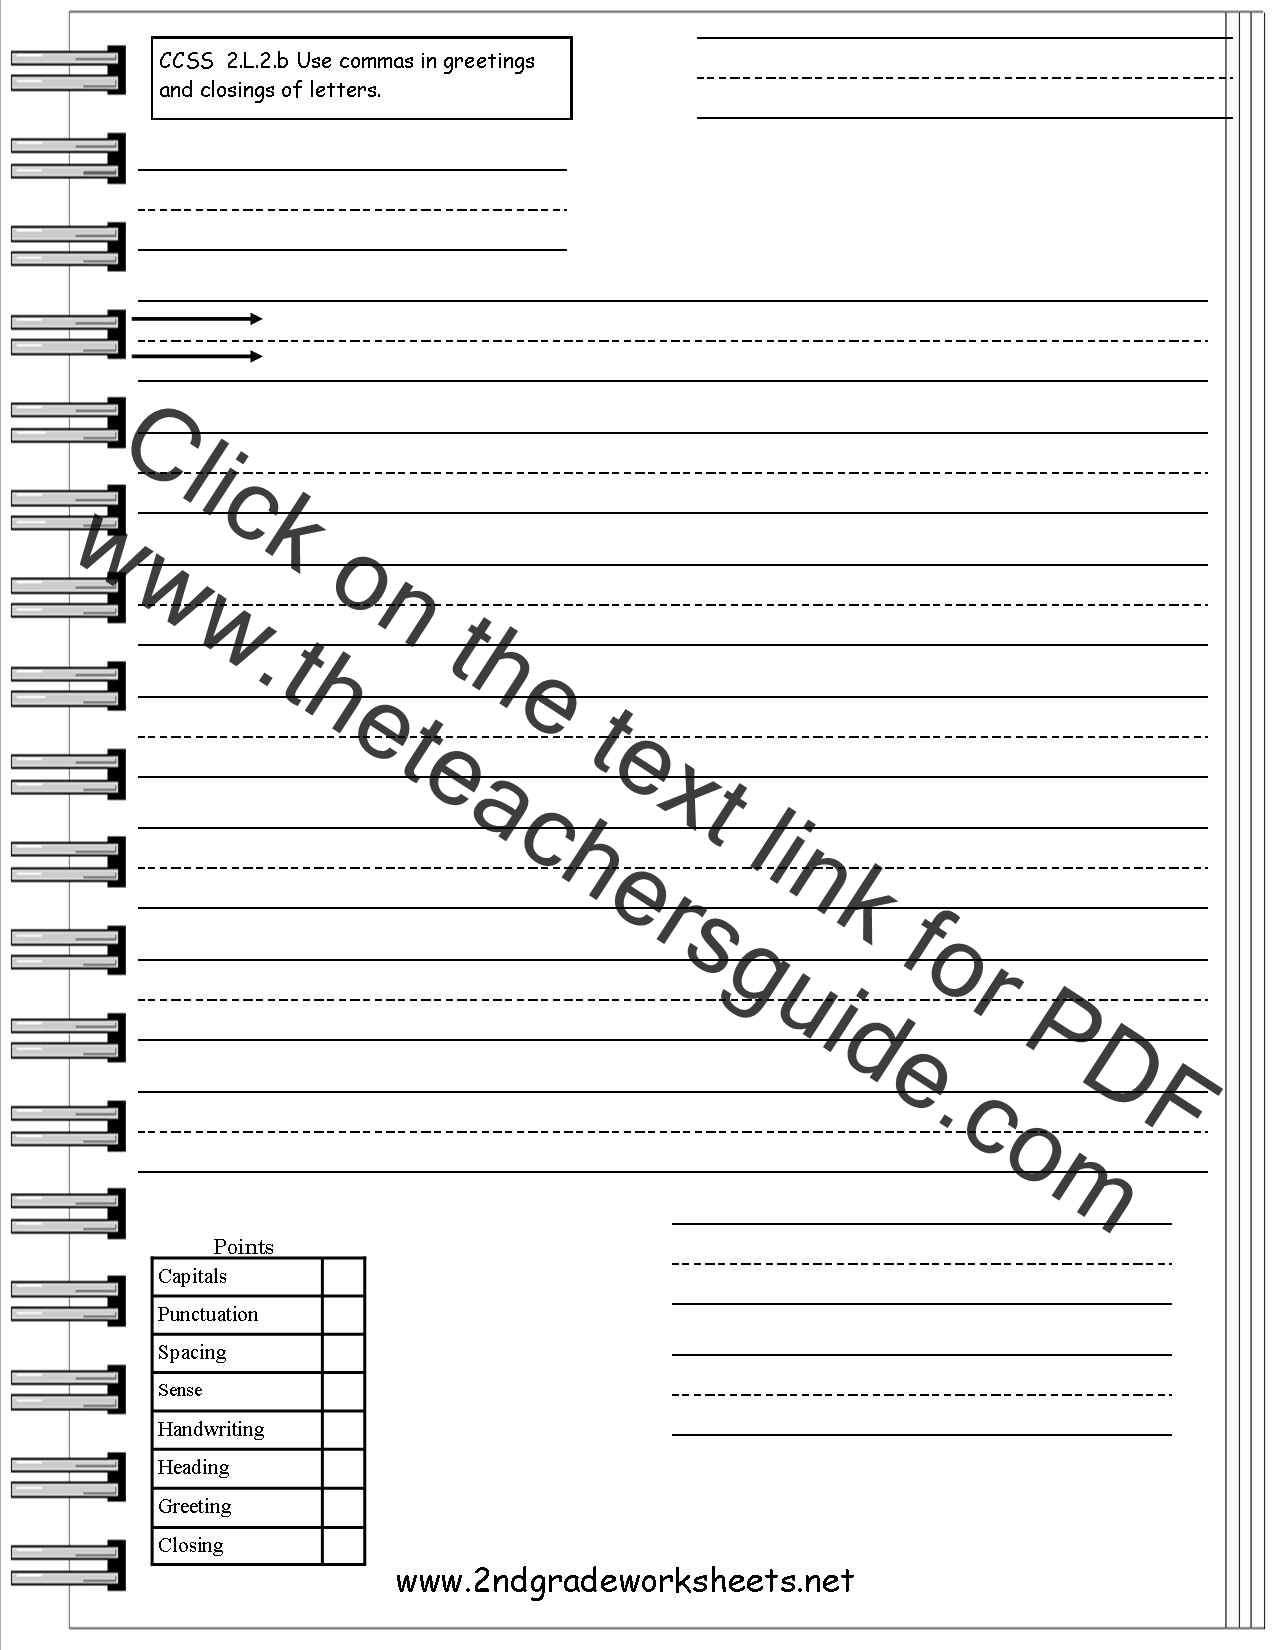 Worksheets 2nd Grade Writing Worksheets Free Printable letters and parts of a letter worksheet friendly forms